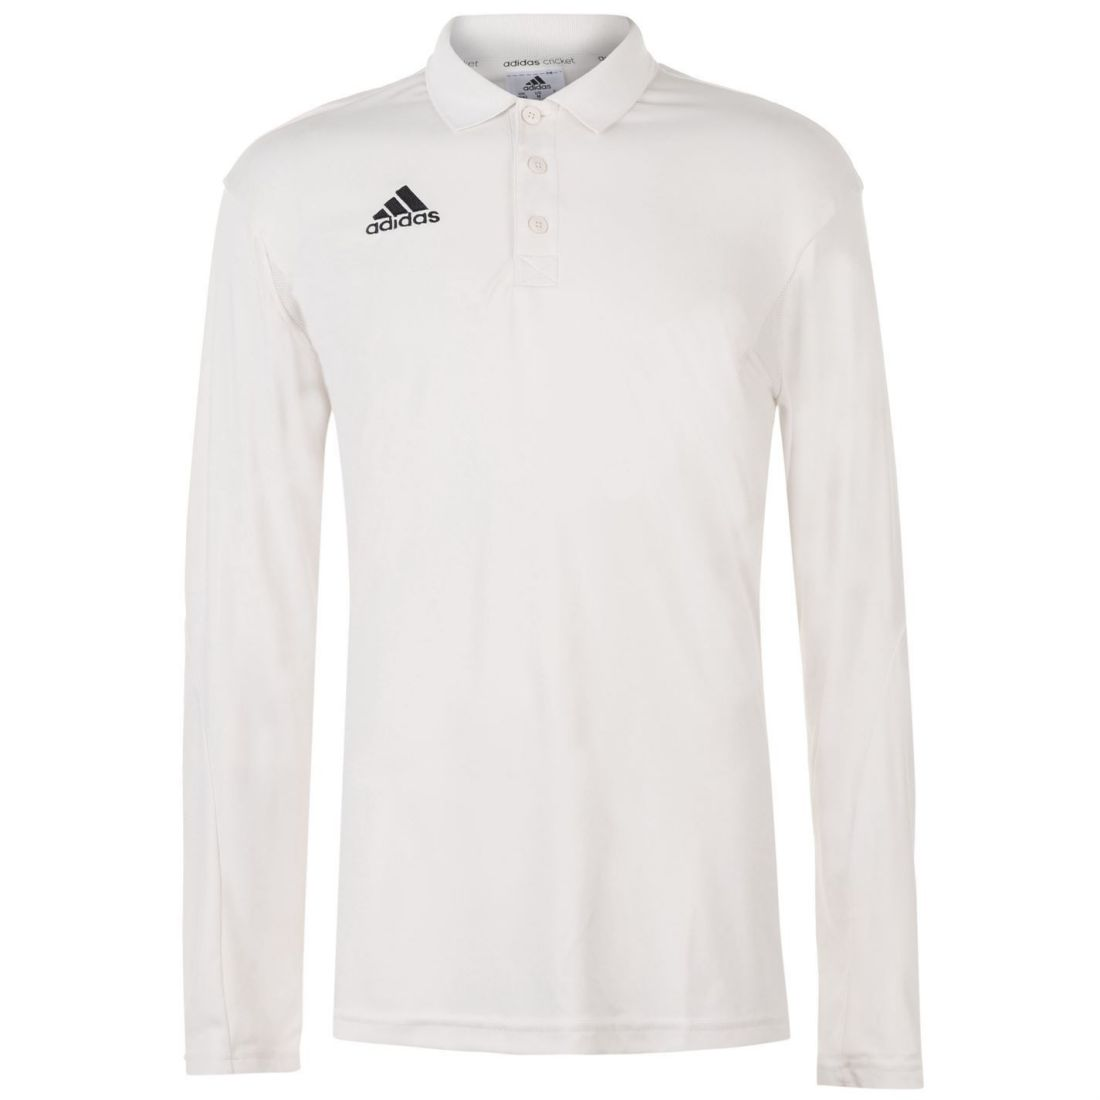 22a30aba adidas Mens Howzat Long Sleeve Polo Cricket Shirt T Top Breathable  Lightweight